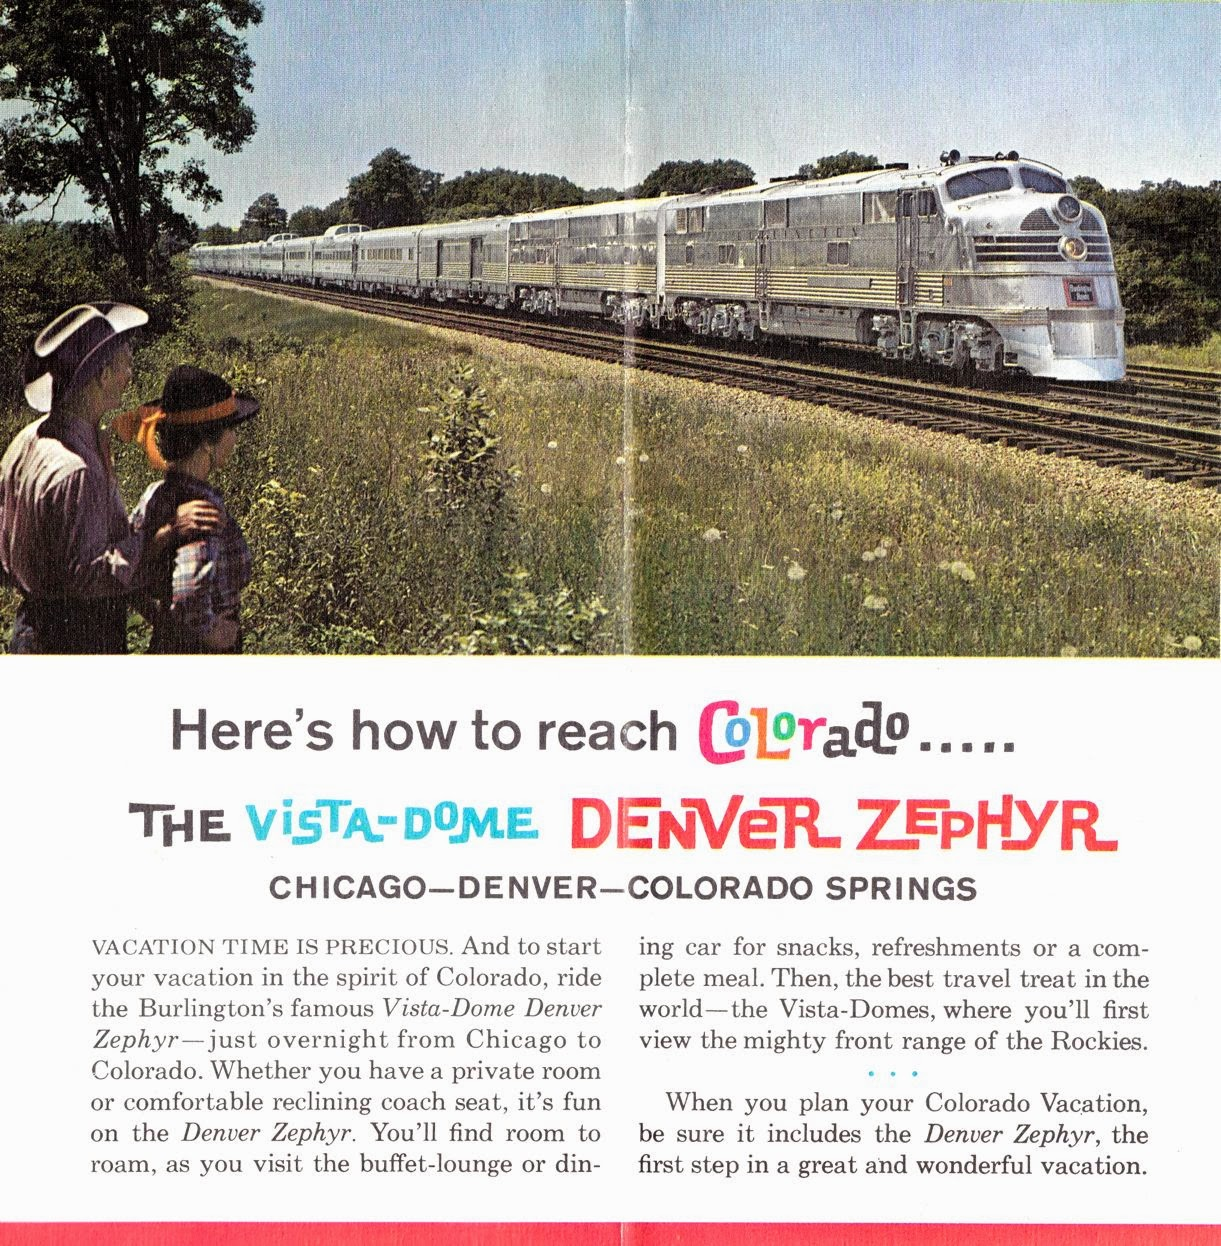 Denver Zephyrs: And Everything Else Too: Colorful Colorado